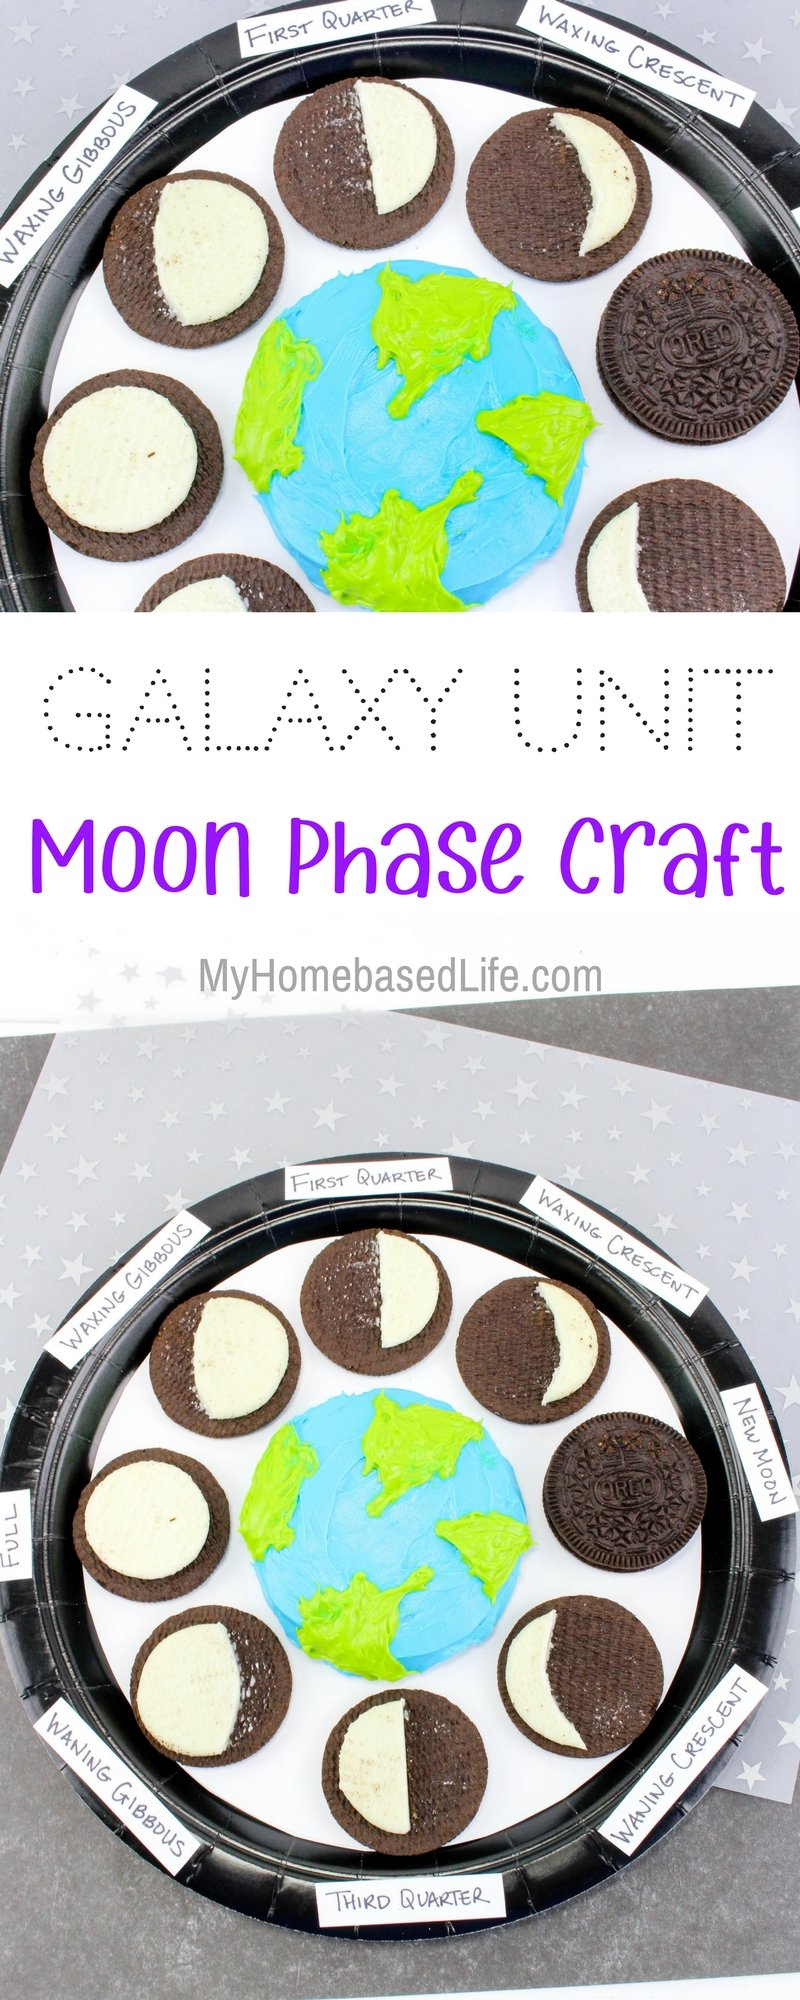 Galaxy Unit: Moon Phases Learning Craft. A great fun way to teach children the moon phases that is edible too! Print your free educational worksheets that go along with this kids activity. | #homeschoolworksheets | #kidsactivity | #kidscraft | Kids Craft | Kids Activity | Kids Science Lesson | Homeschool Activity | Homeschool Worksheets | Solar System Activity | Moon Phases Craft for kids |